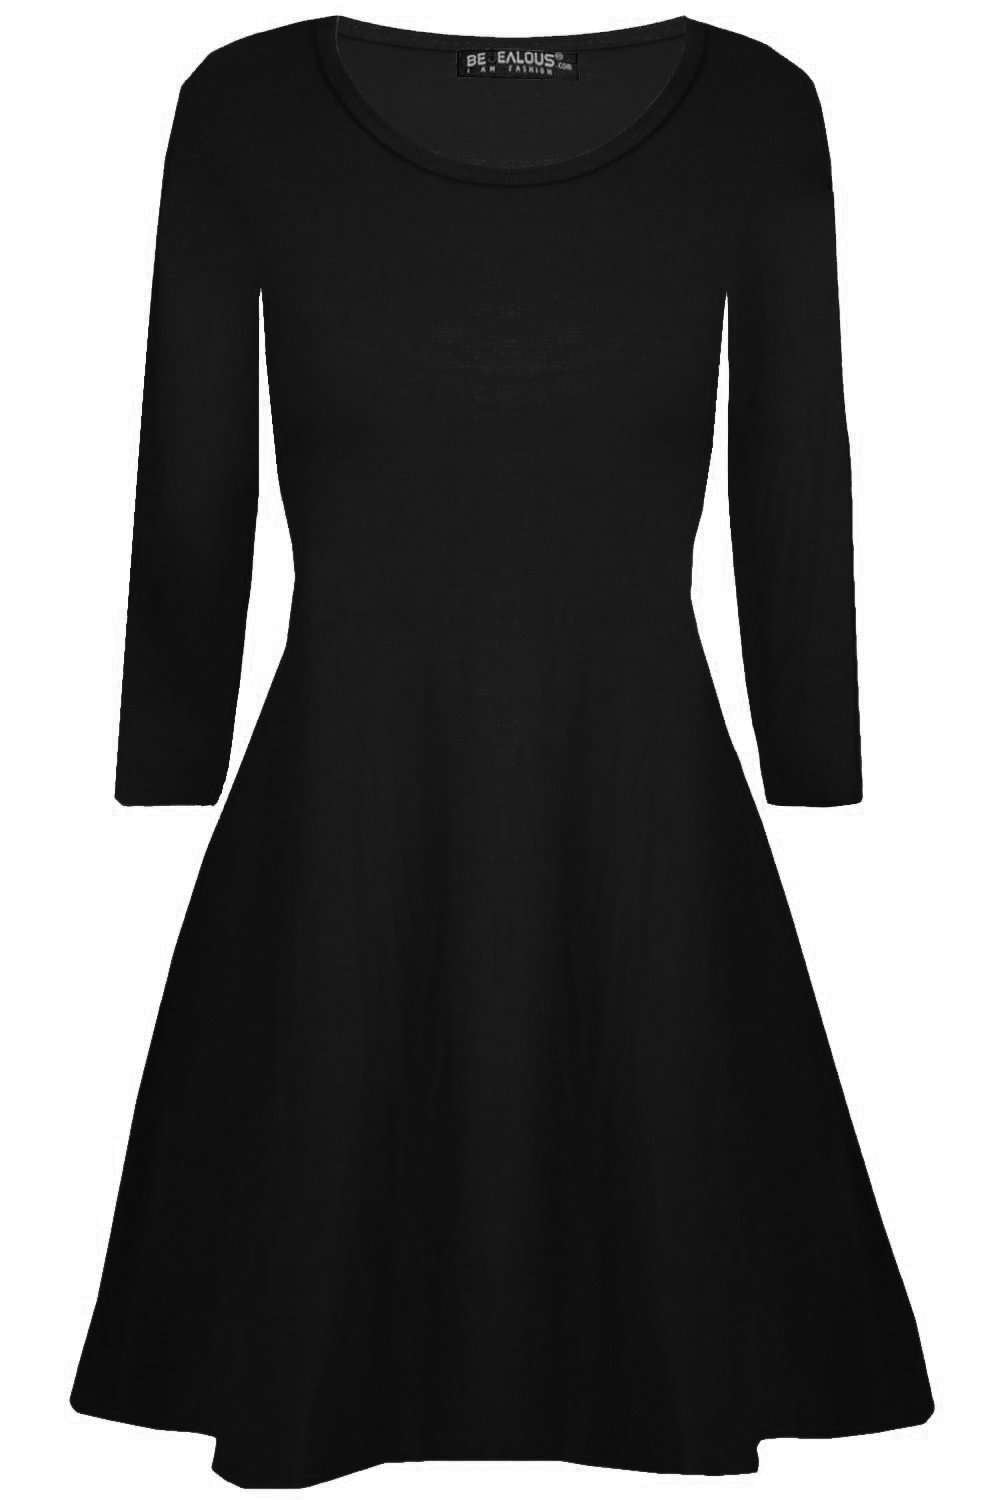 Lottie Plus Long Sleeve Mini Swing Dress - bejealous-com